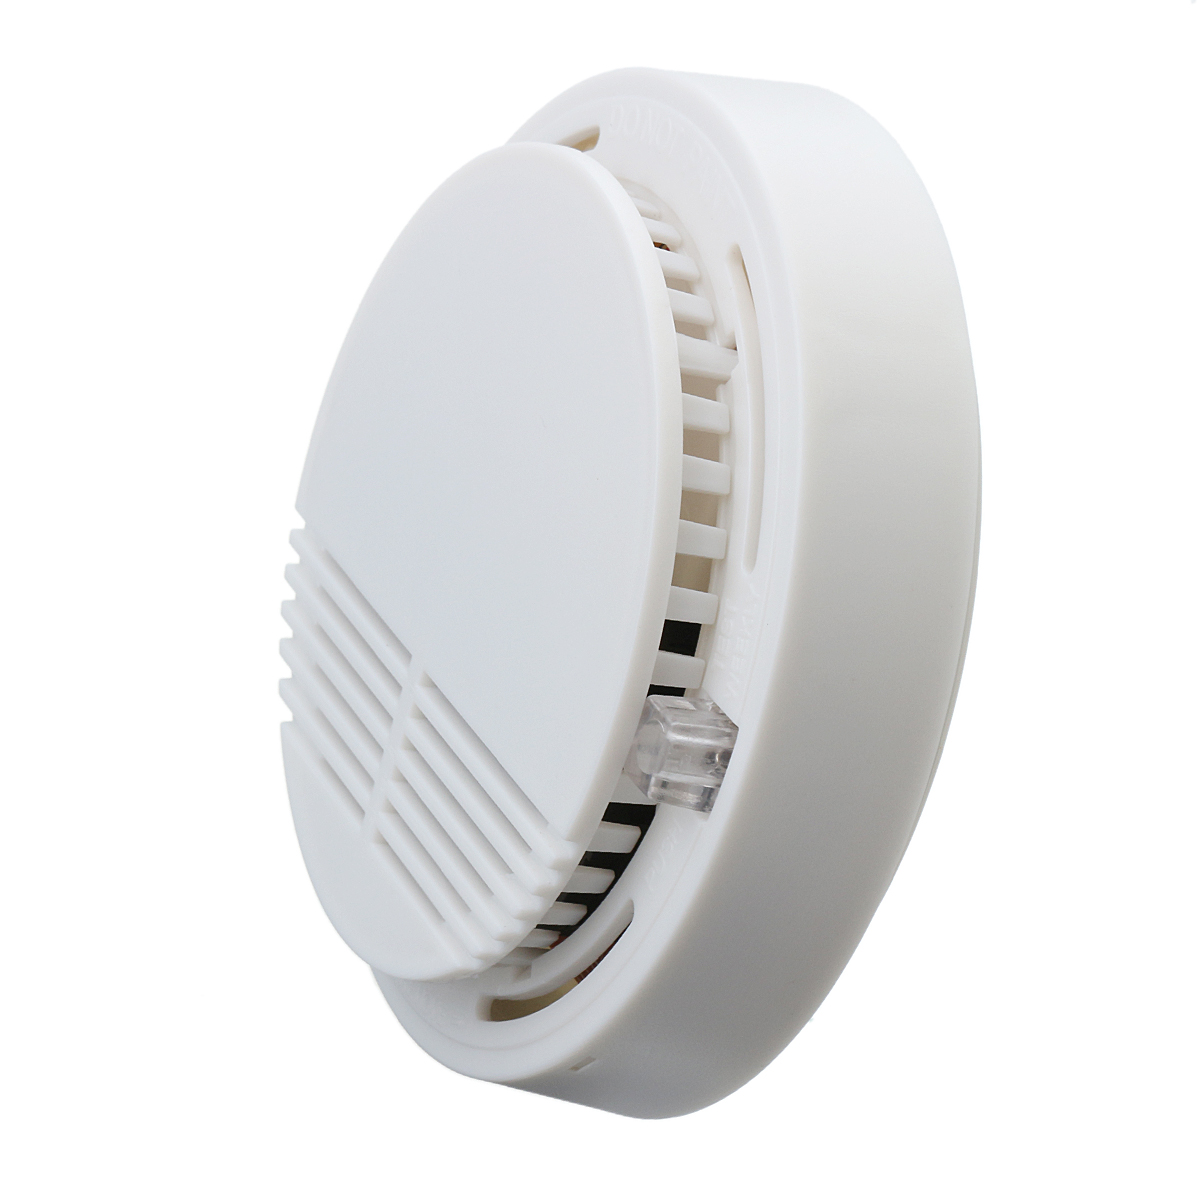 Home Security Photoelectric Cordless Smoke Detector Fire Sensor Alarm